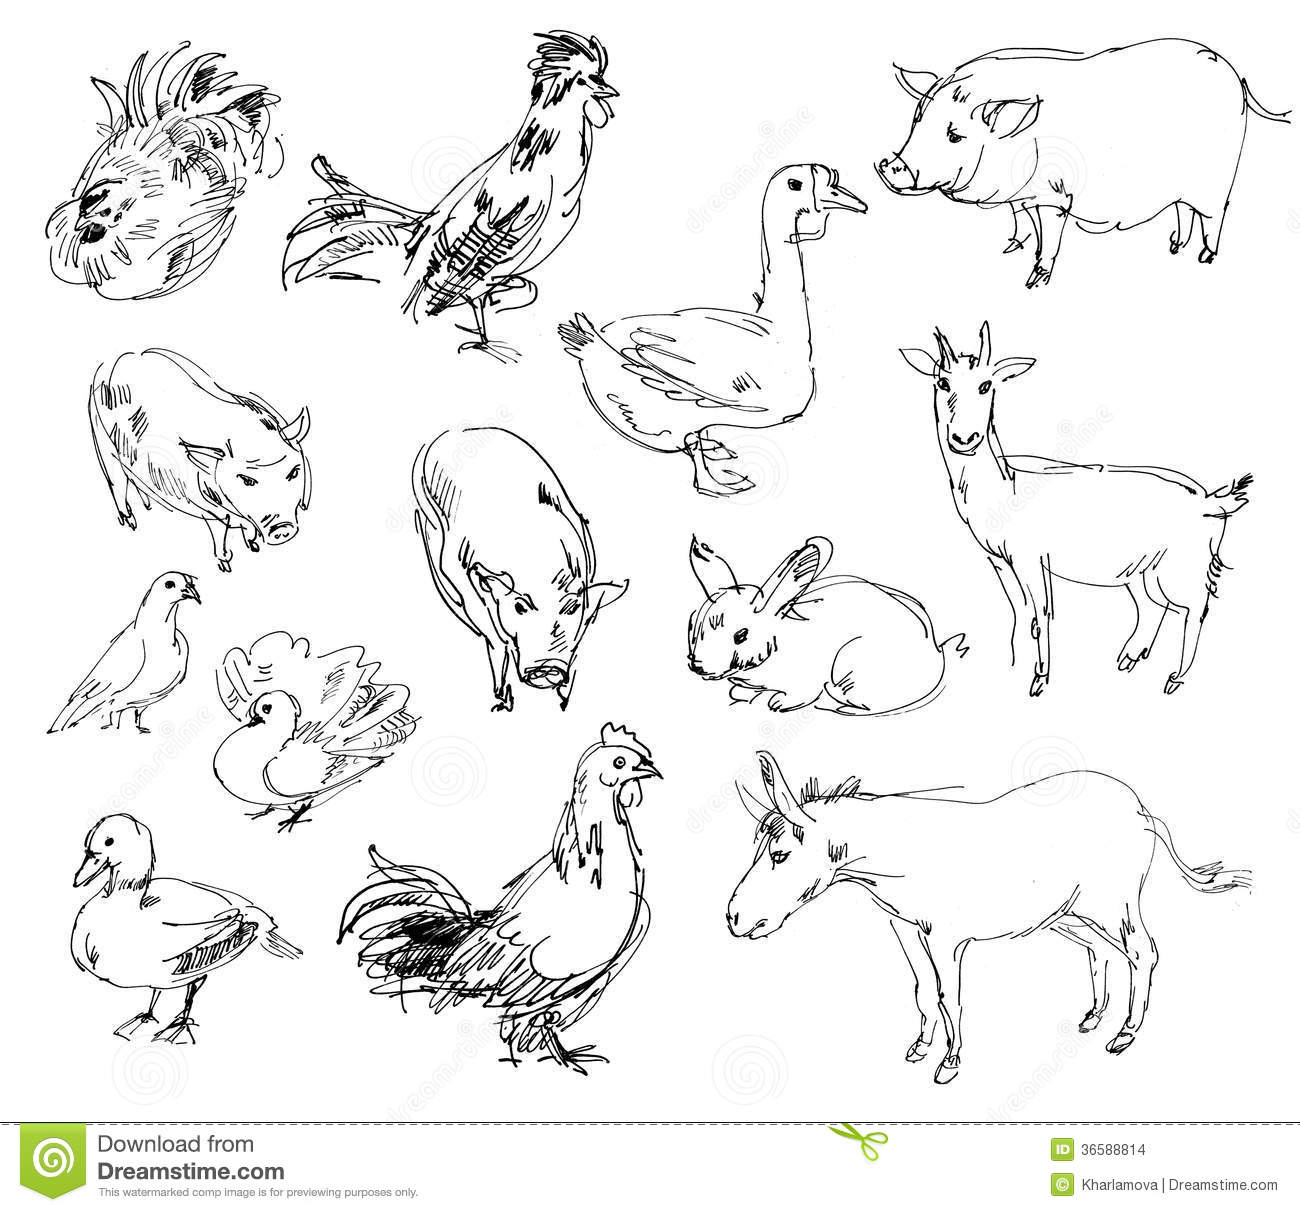 Animal Clip Art Hit Toon together with 2 likewise Search furthermore Stock Images Farm Animals Set Hand Drawn Image36588814 together with Coloring Pages Graffiti. on safari cartoon icons